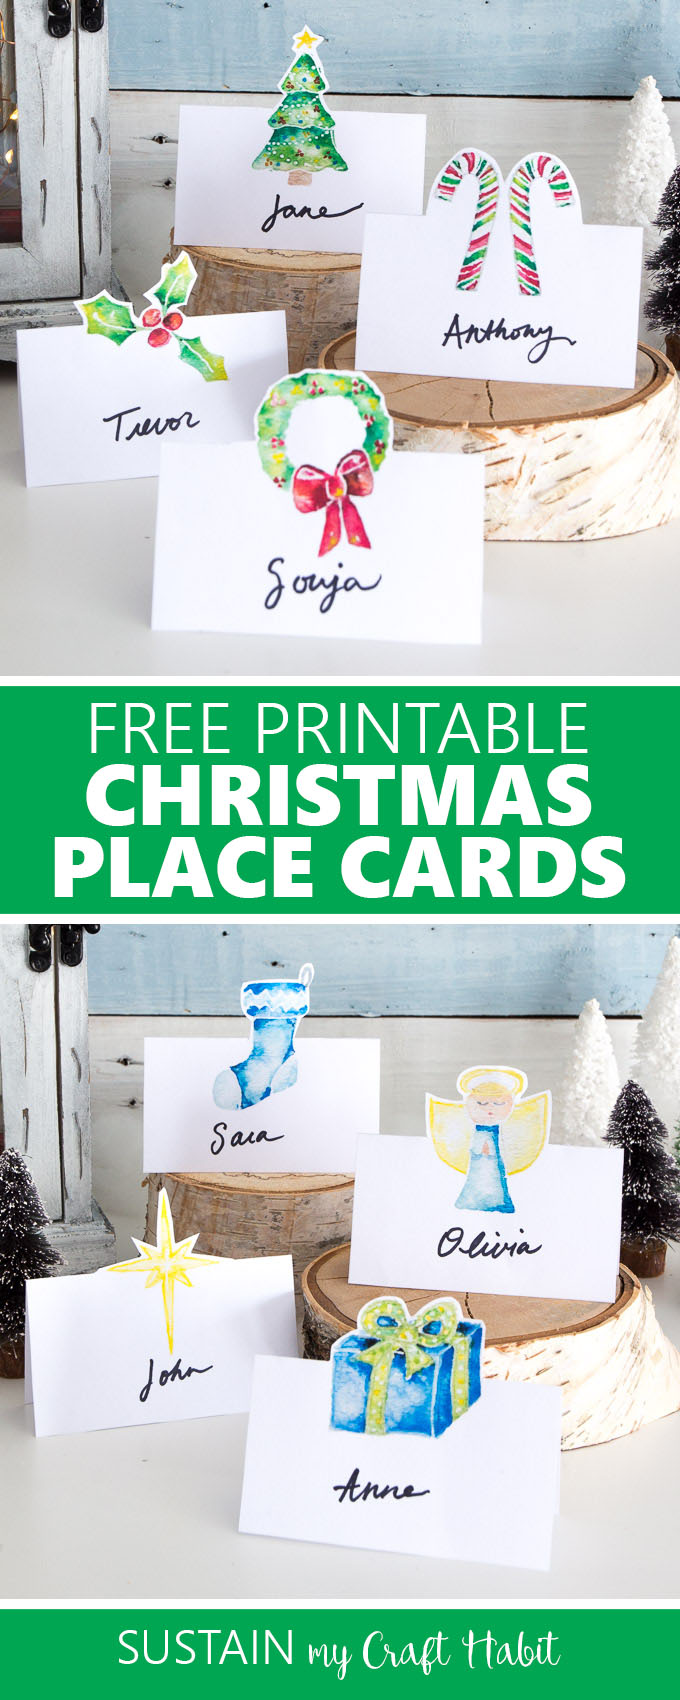 photograph relating to Free Printable Christmas Place Cards called Cost-free Printable Xmas Issue Playing cards Keep My Craft Routine